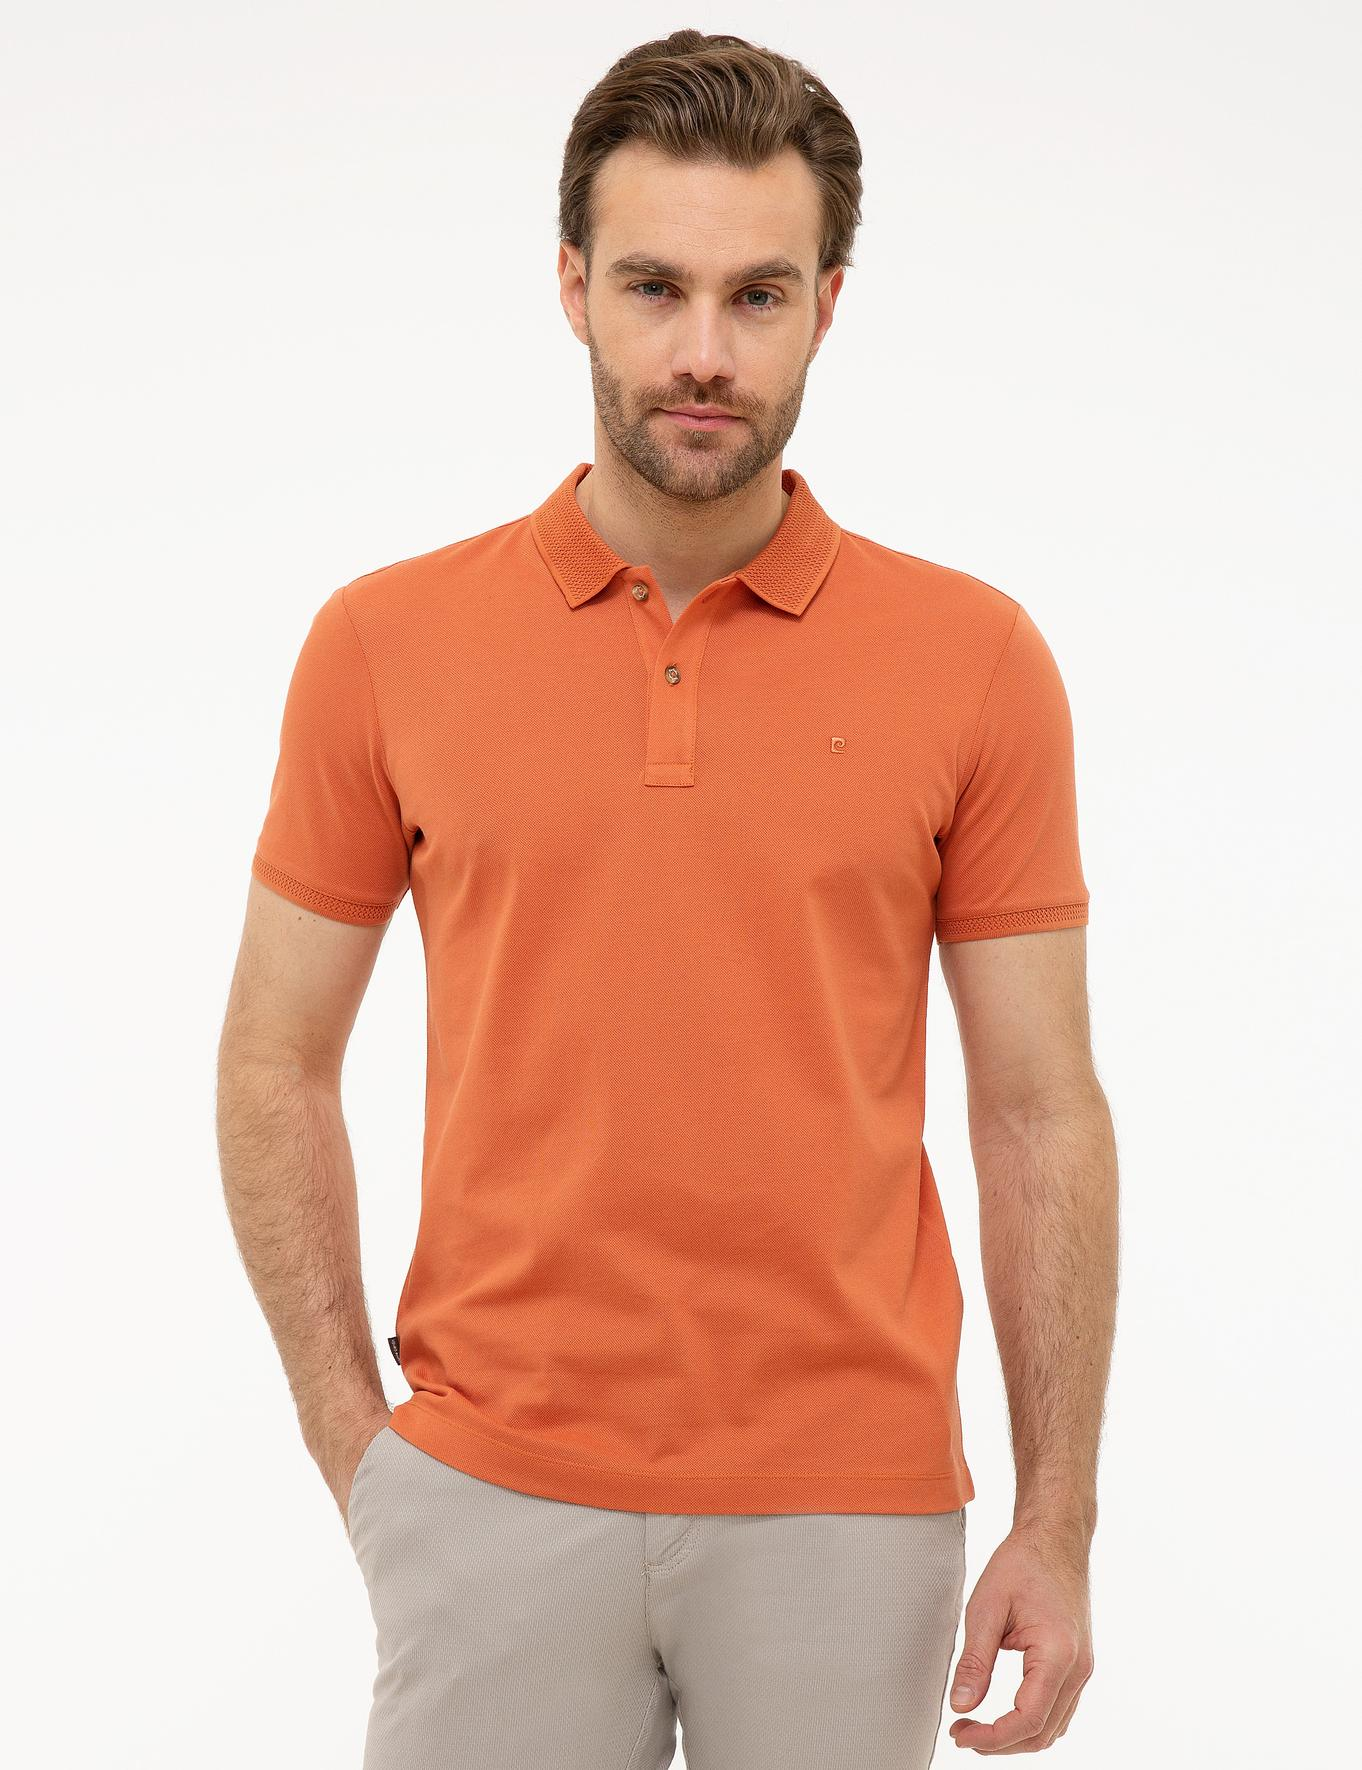 Turuncu Slim Fit Merserize T-Shirt